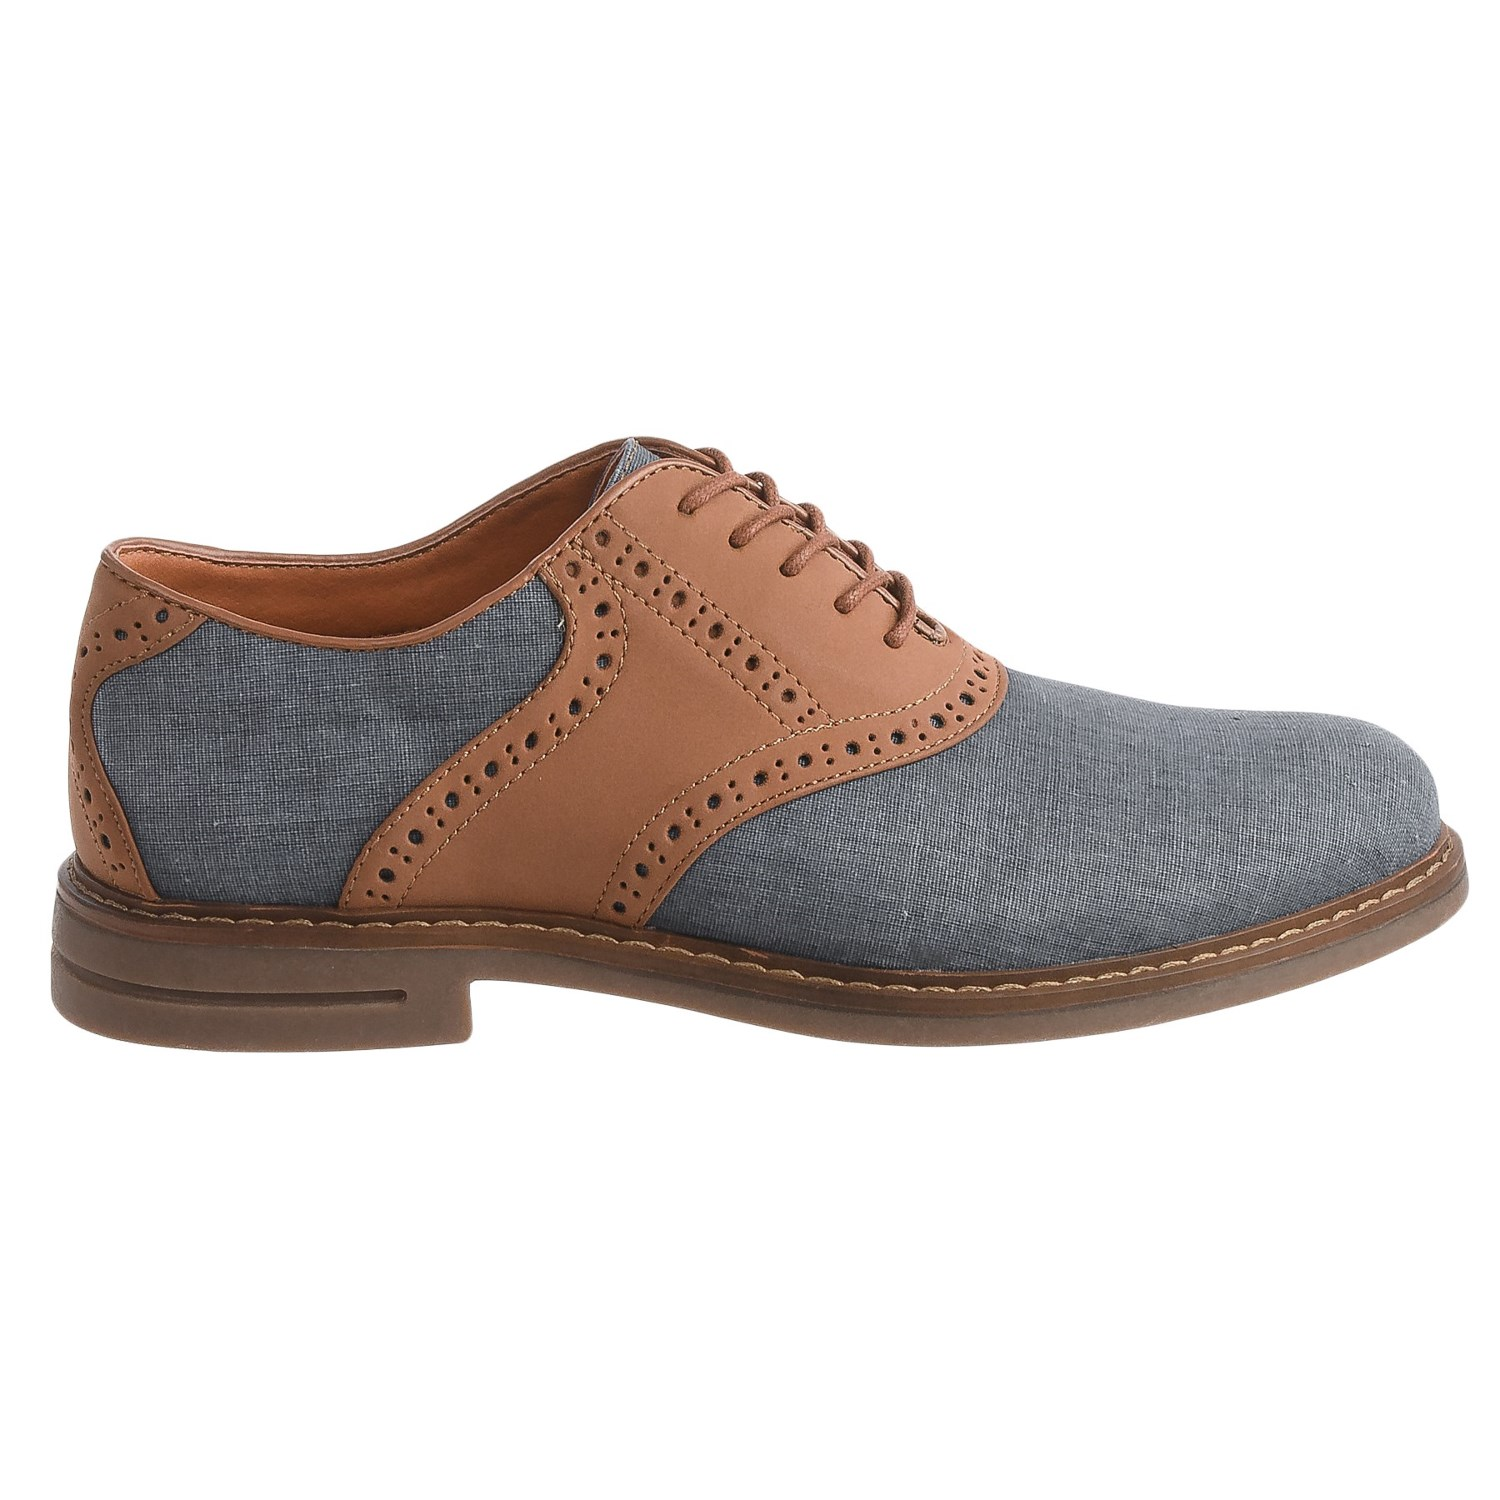 Saddle Shoes In Store